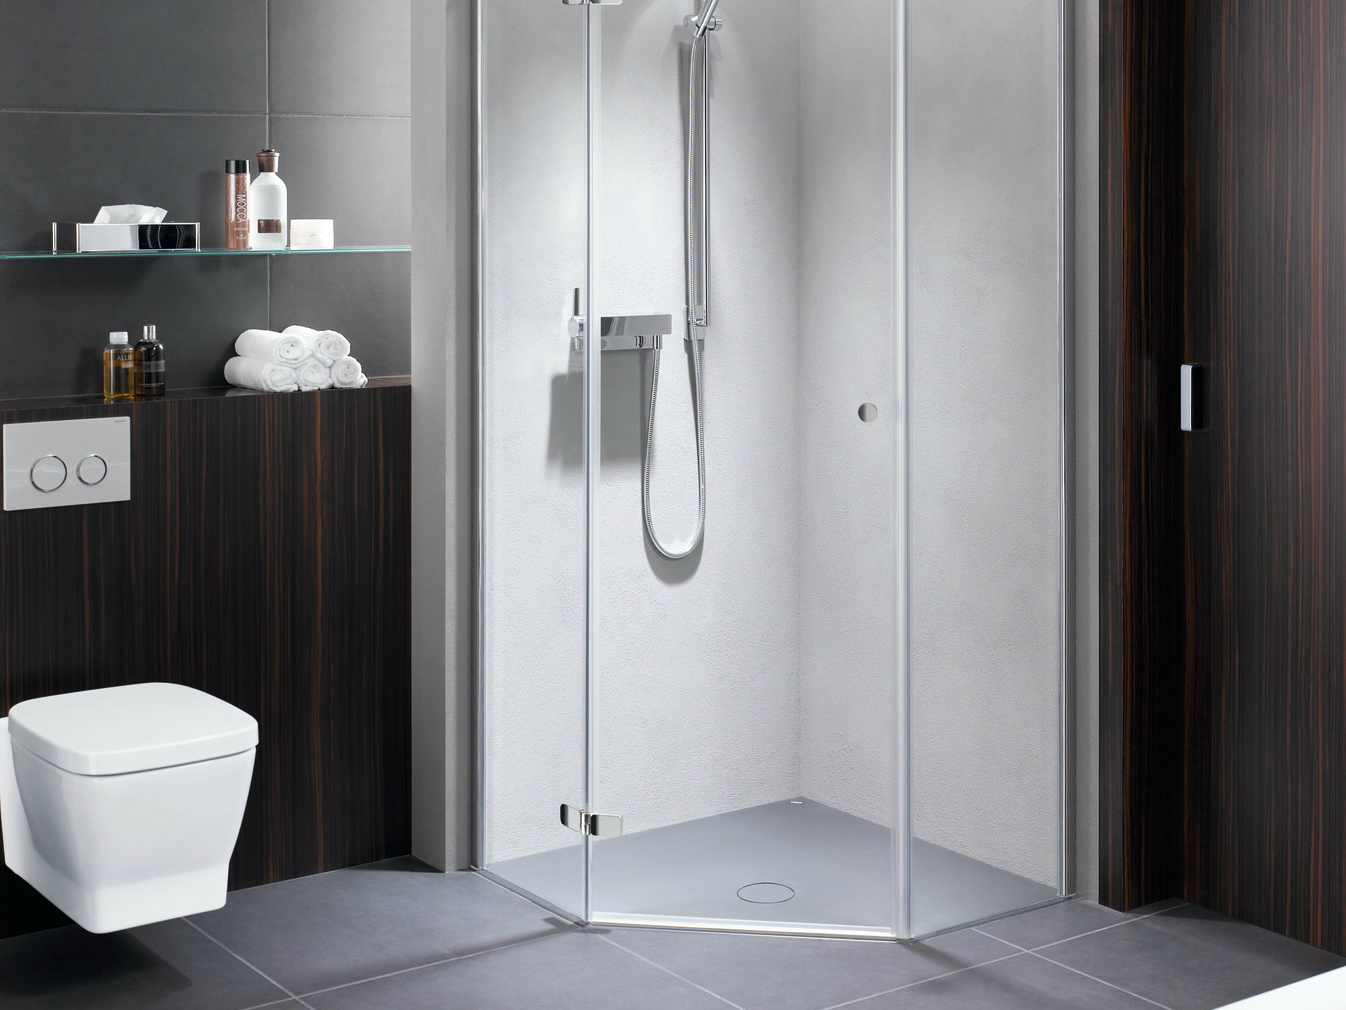 receveur de douche d 39 angle l 39 italienne bettefloor caro by bette. Black Bedroom Furniture Sets. Home Design Ideas